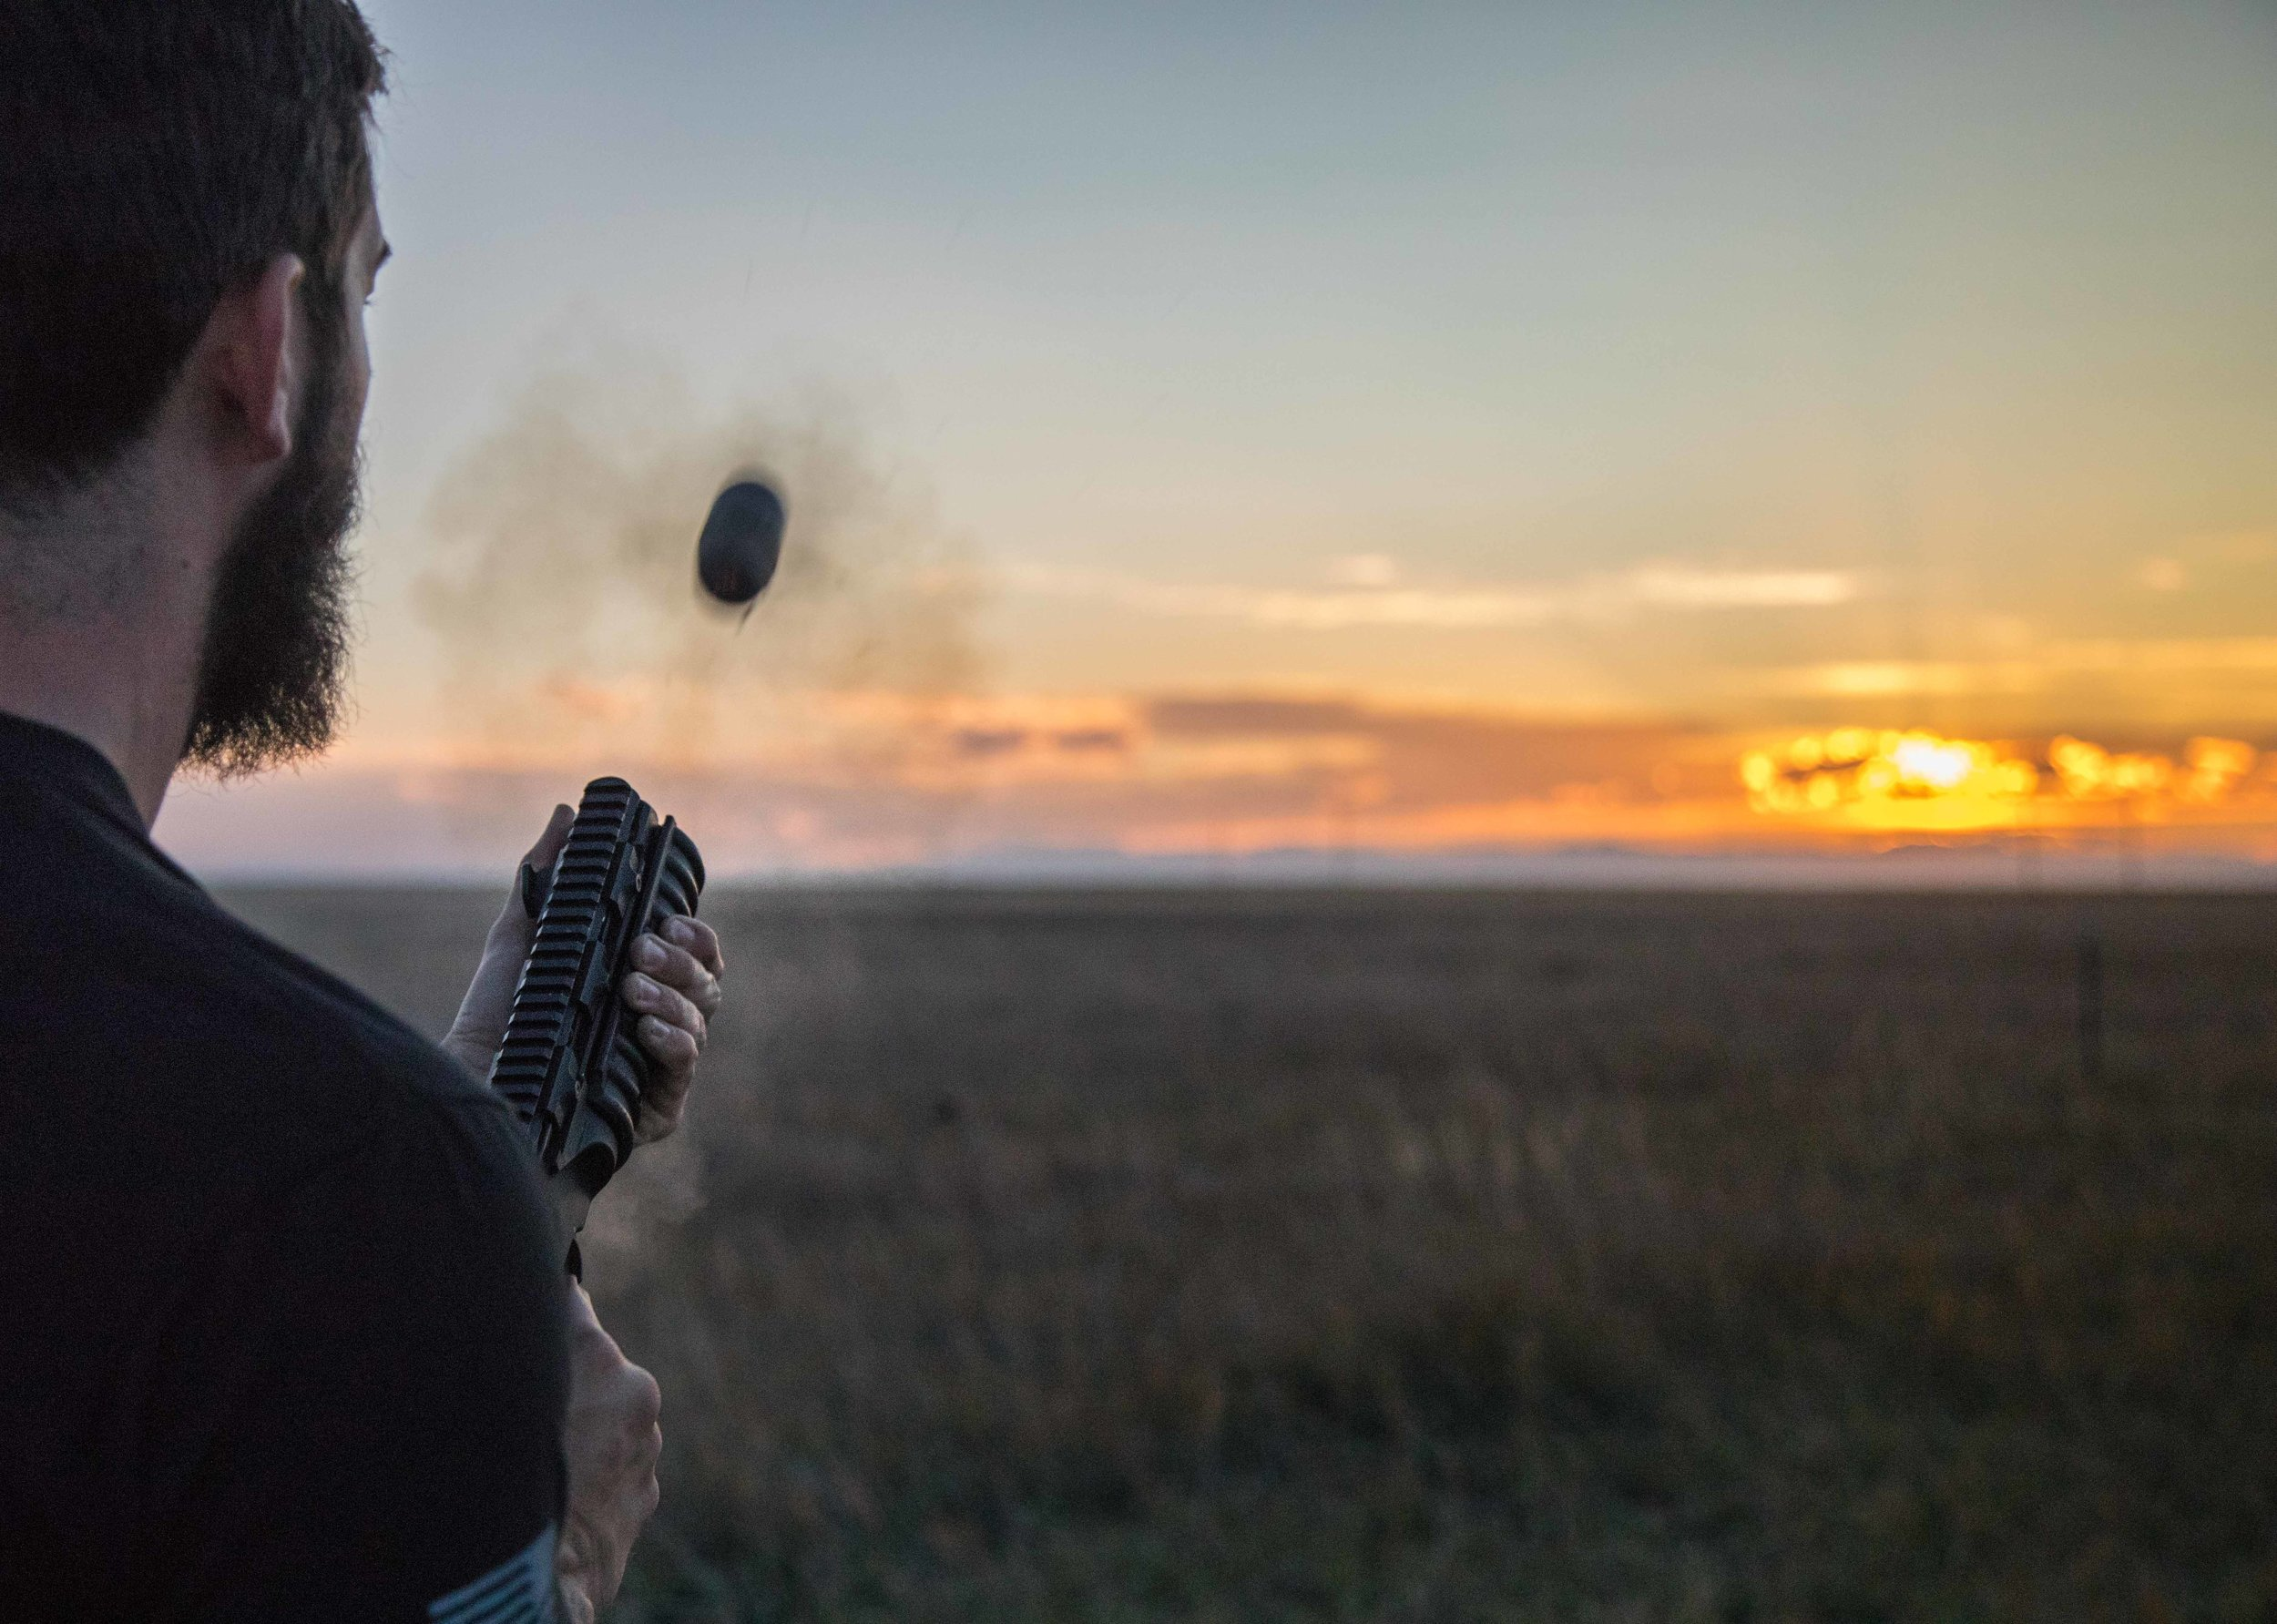 For this shot I used a very fast shutter speed of 1/4000. You will notice this captures the 40mm grenade coming out of the gun (yeah I know, wtf am I do doing shooting this sort of photo? It was for a tactical gear company.) Because the sun was setting there wasn't a whole lot of light to play with so I had to reduce the aperture to f/4 to let in a lot of light as well as bump up the ISO. The result is a very shallow depth of field and a lot of visible noise (that's the grainy stuff) in the photo.  Canon 5D Mark IV, 24-105mm | f/4, 1/4000, ISO 3200